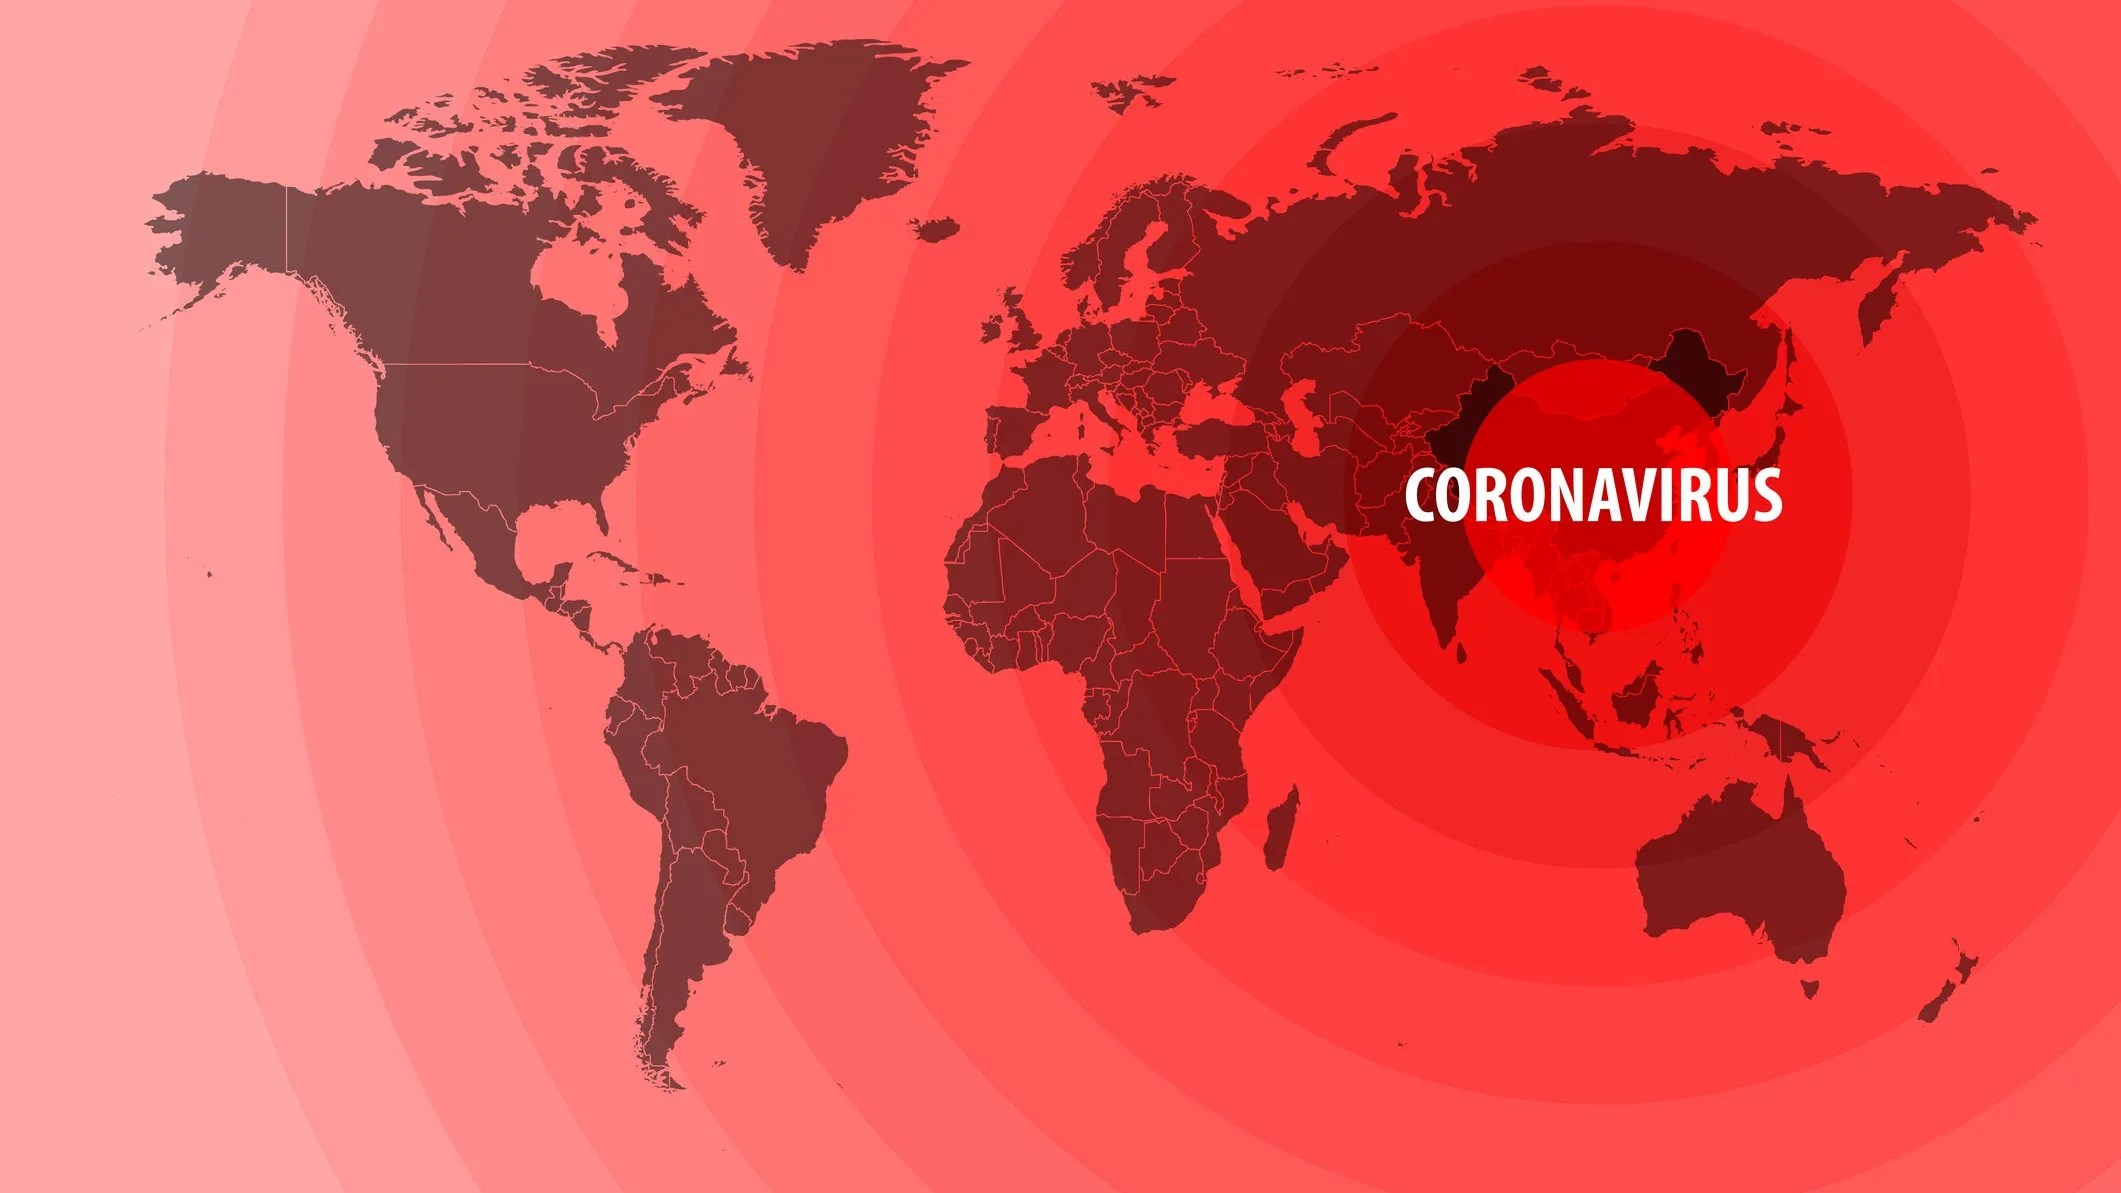 Twitter suspends travel as companies grapple with coronavirus